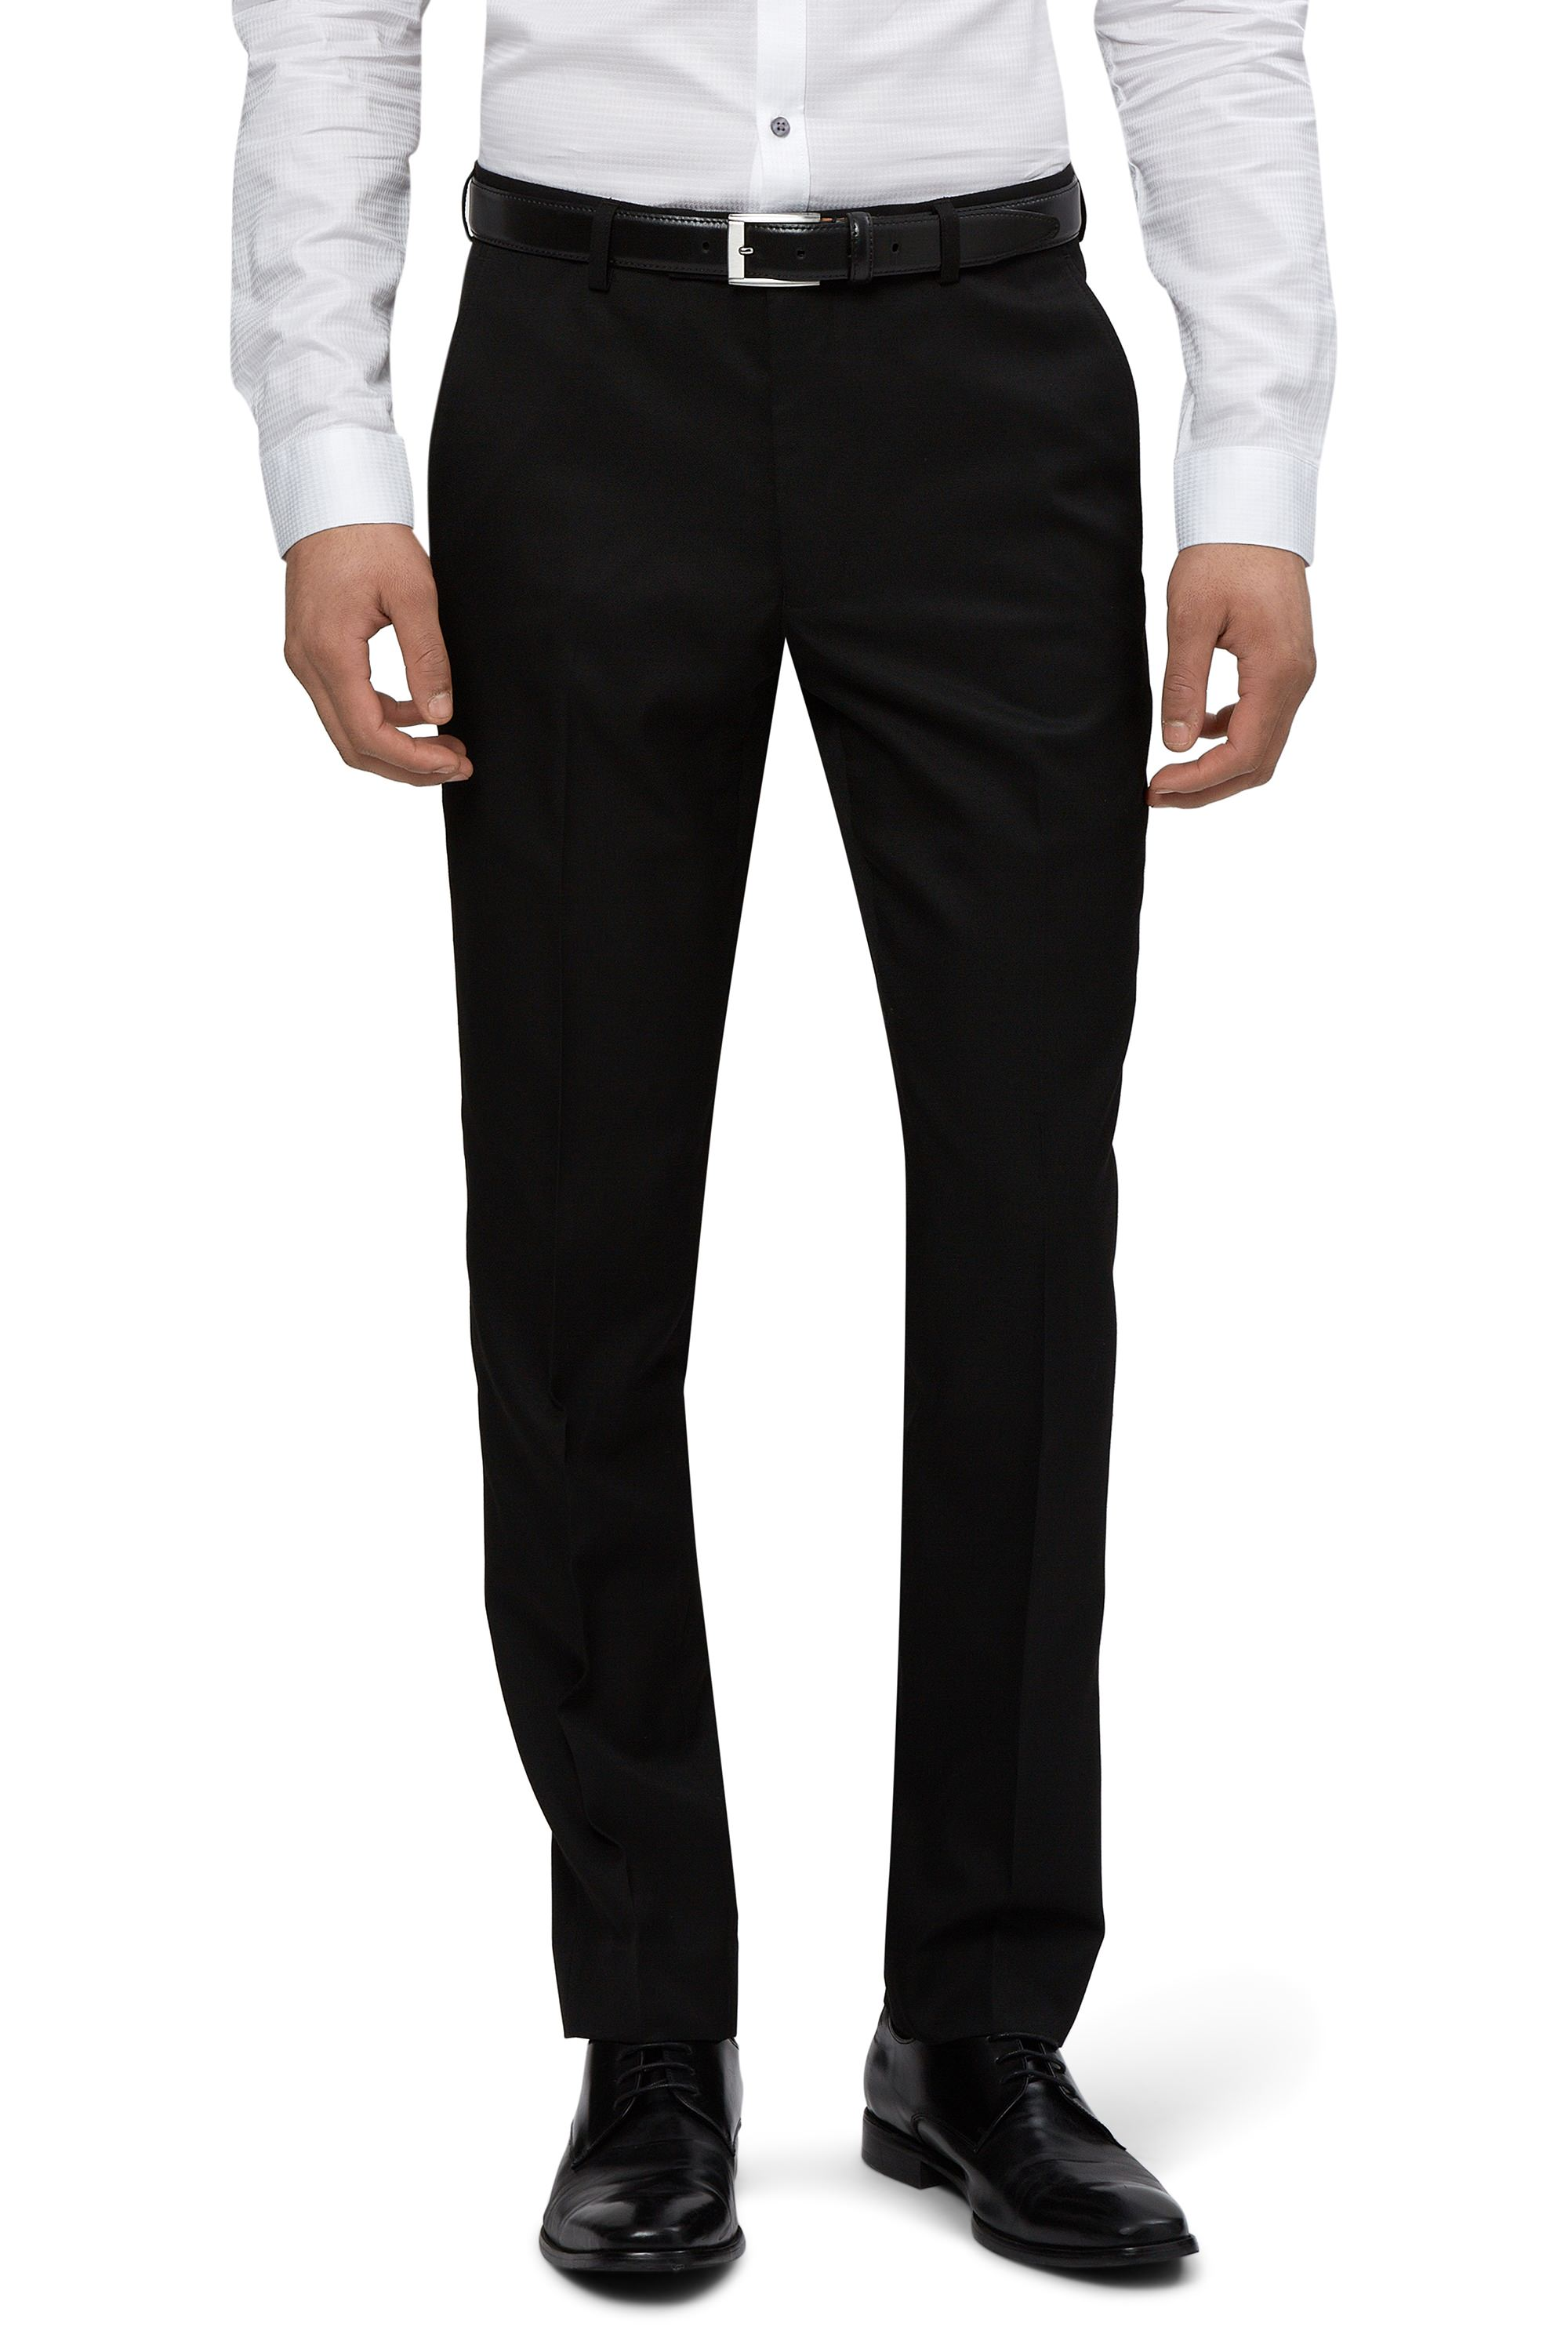 23e134149a9a Moss London Mens Black Suit Trousers Skinny Fit Flat Front Formal ...